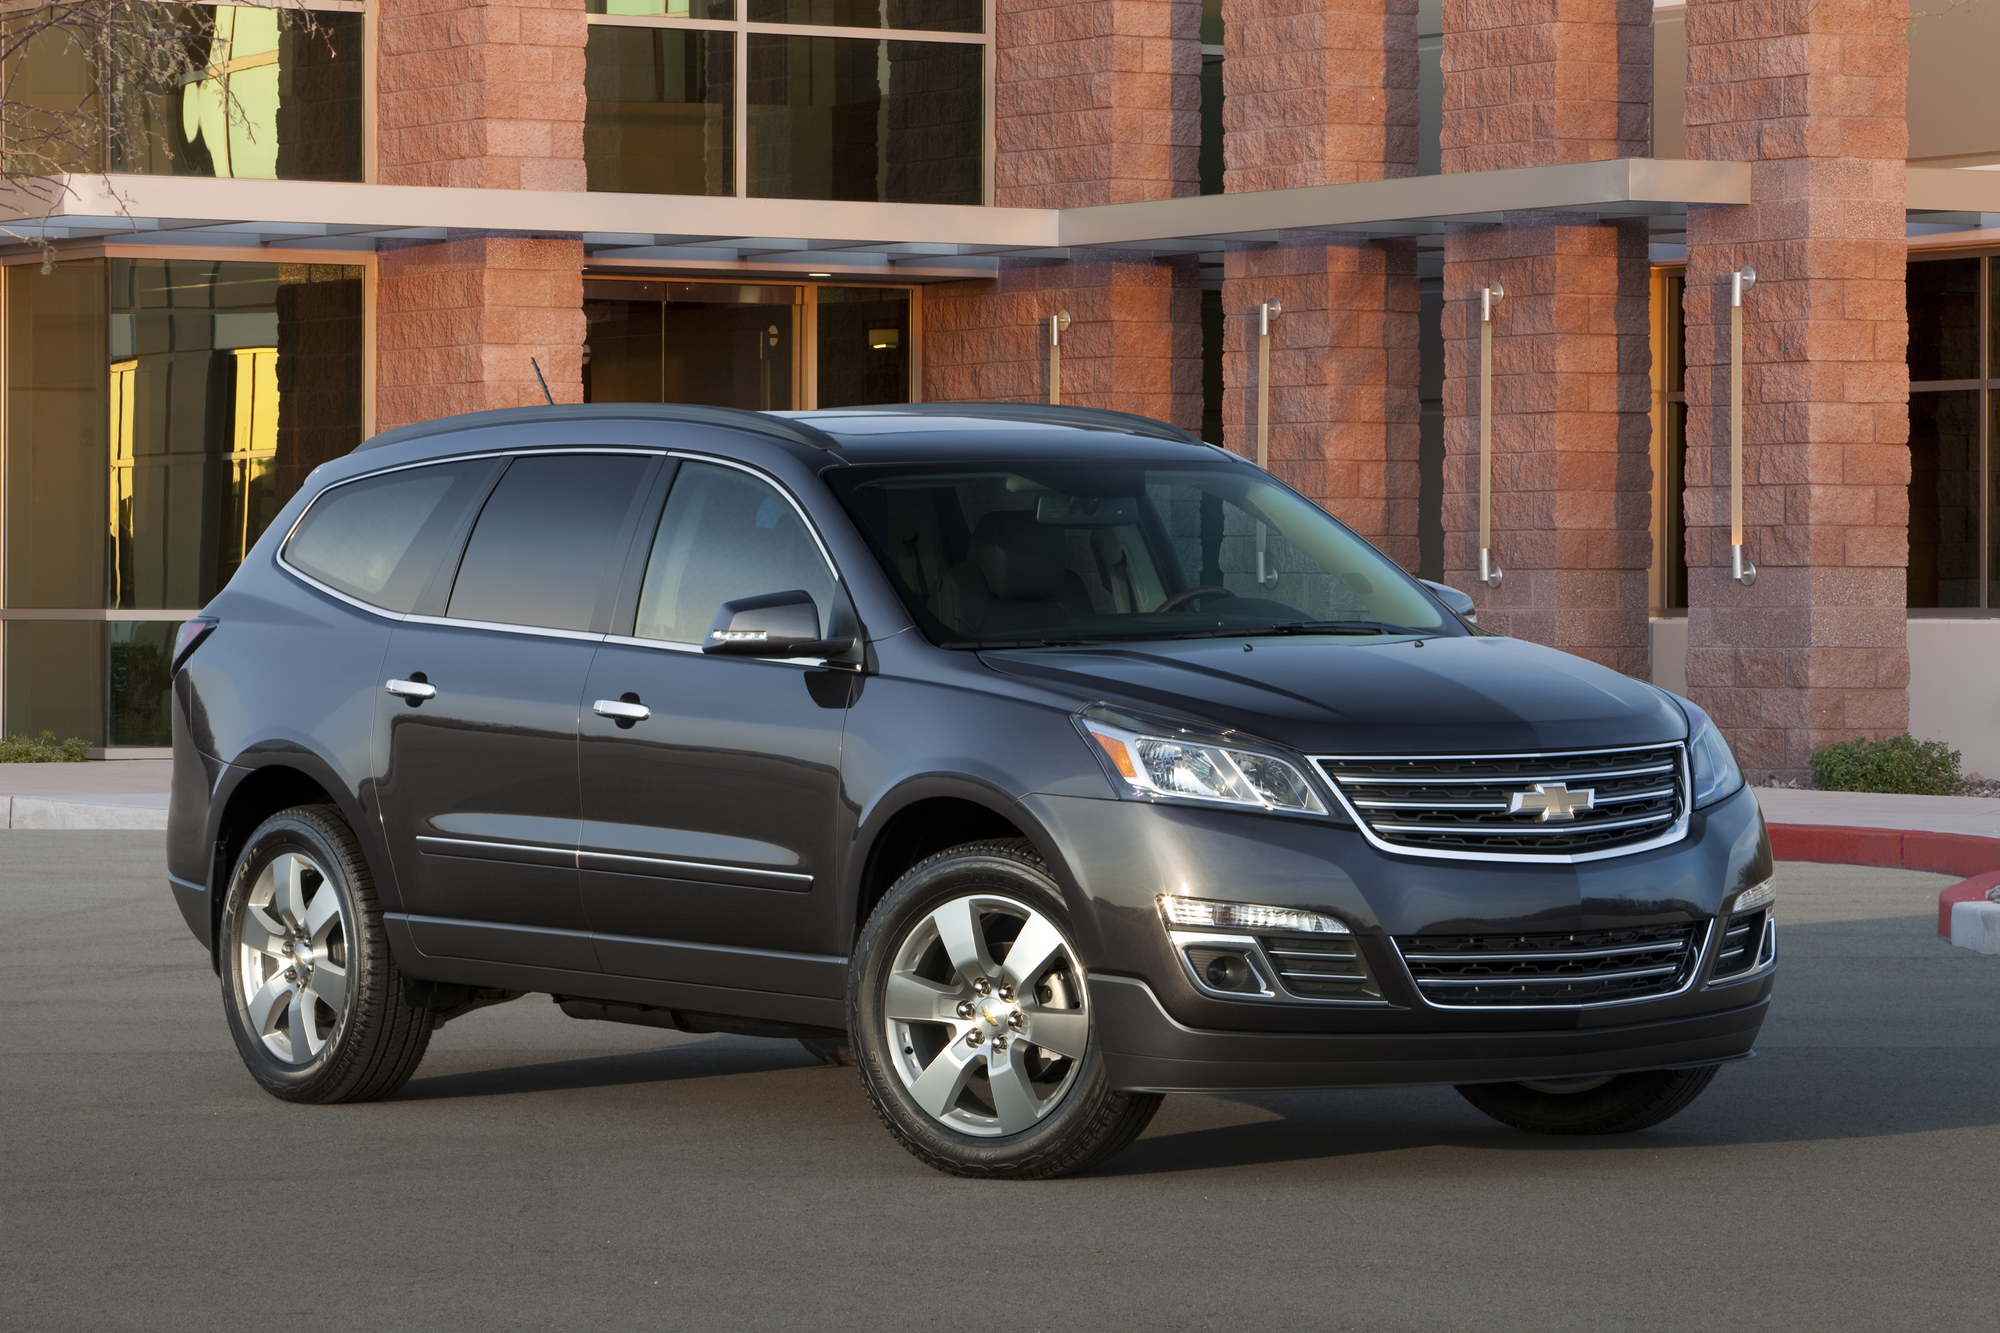 2013 Chevy Traverse Gets New Face, Upgraded Materials and Better Ride